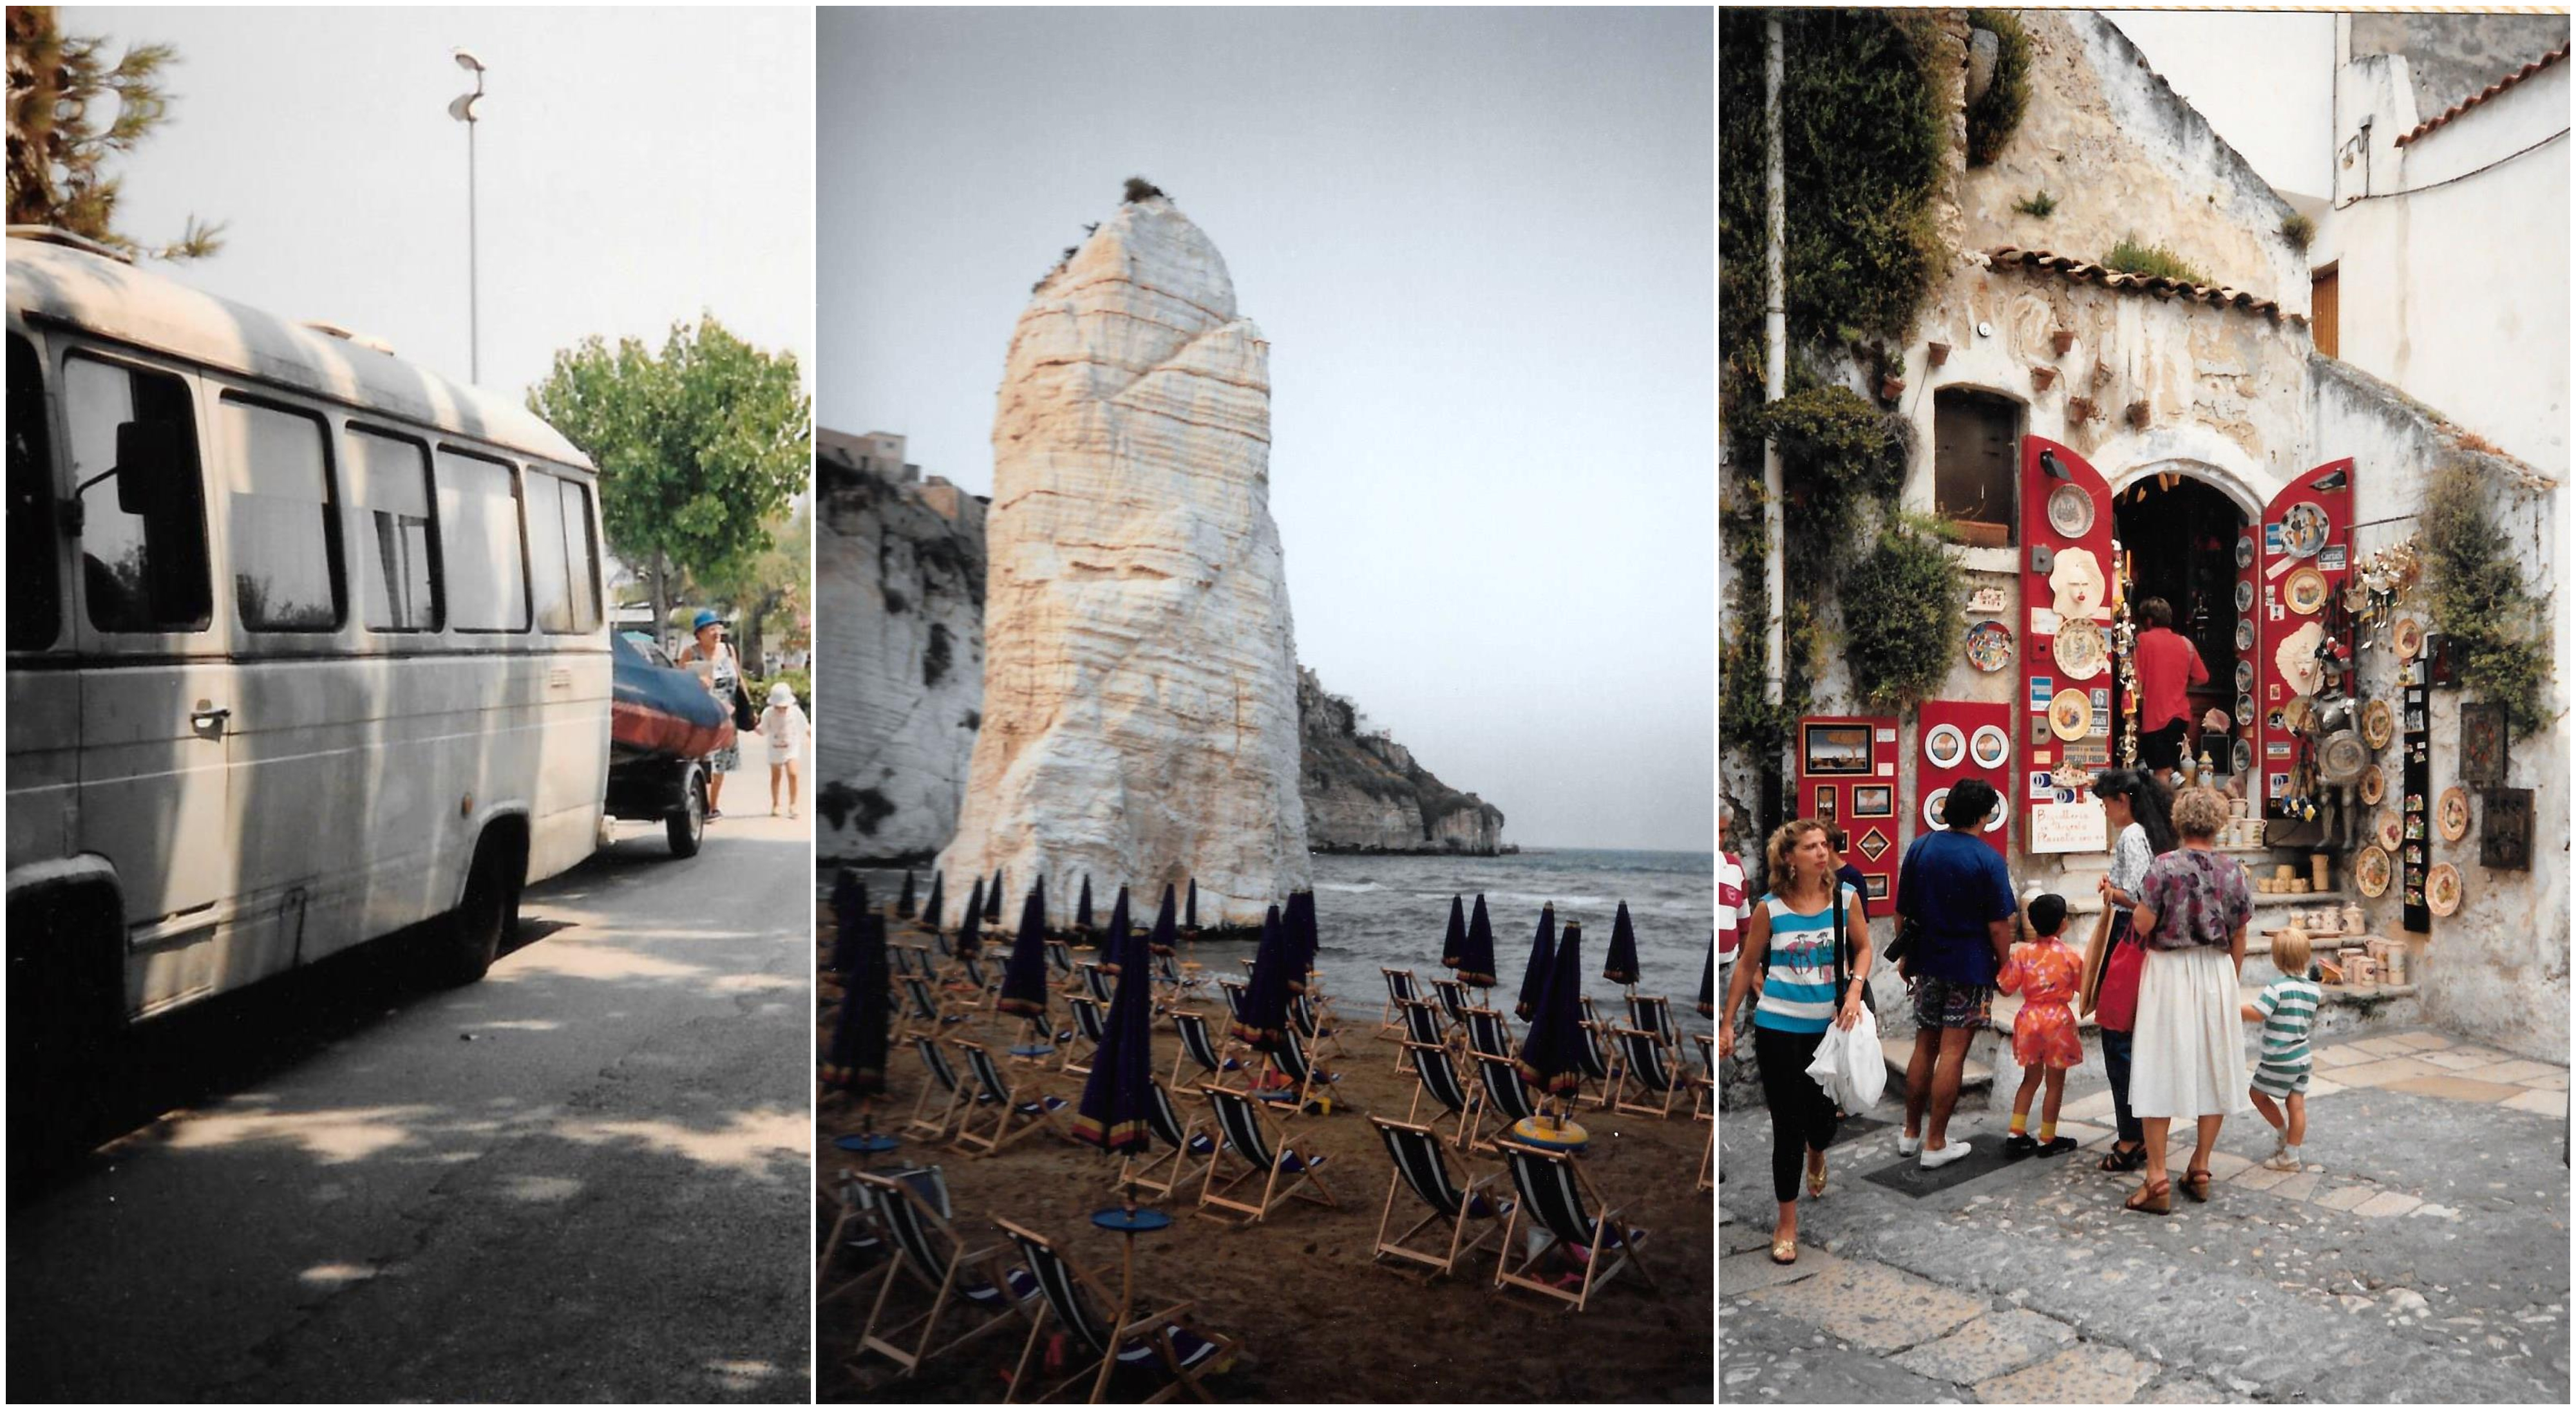 Auweh in Vieste | story.one